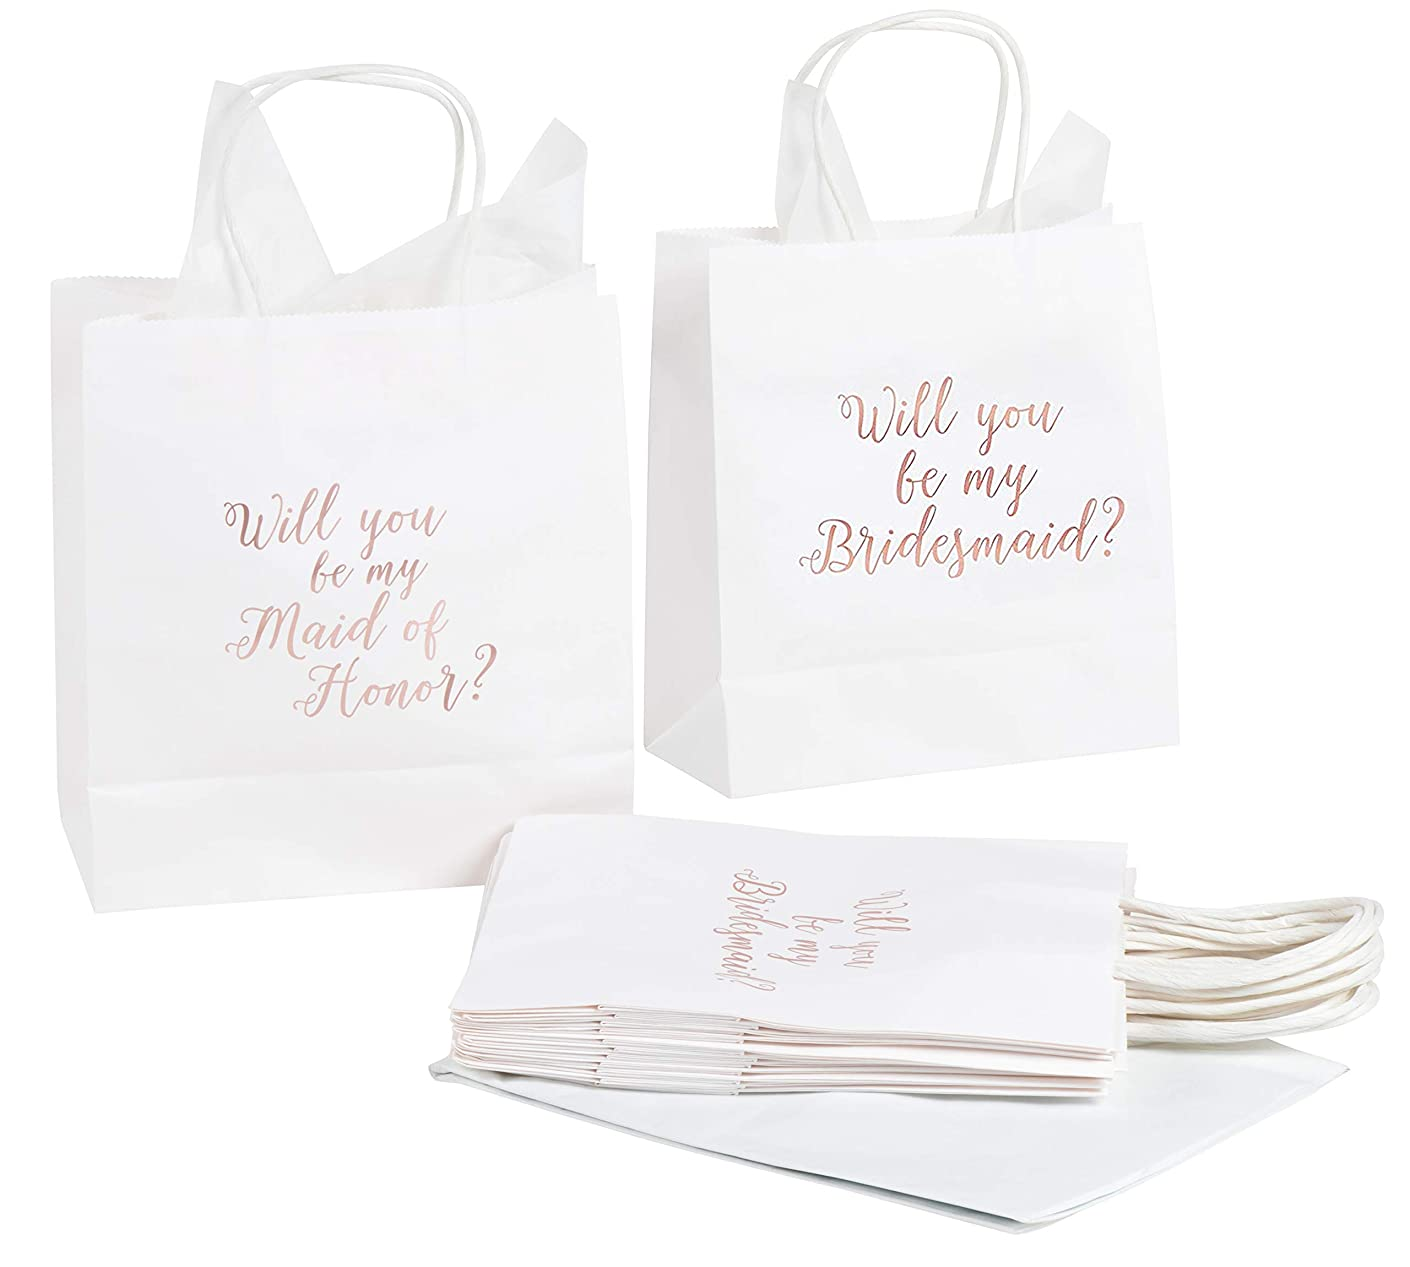 11 Bridesmaid and 1 Maid of Honor Proposal Gift Bag, Rose Gold Foil Text, Includes 20 Sheets of Tissue Paper, Perfect for Will You Be My Bridesmaid, MOH Presents, White, 9 x 8 x 4 Inches